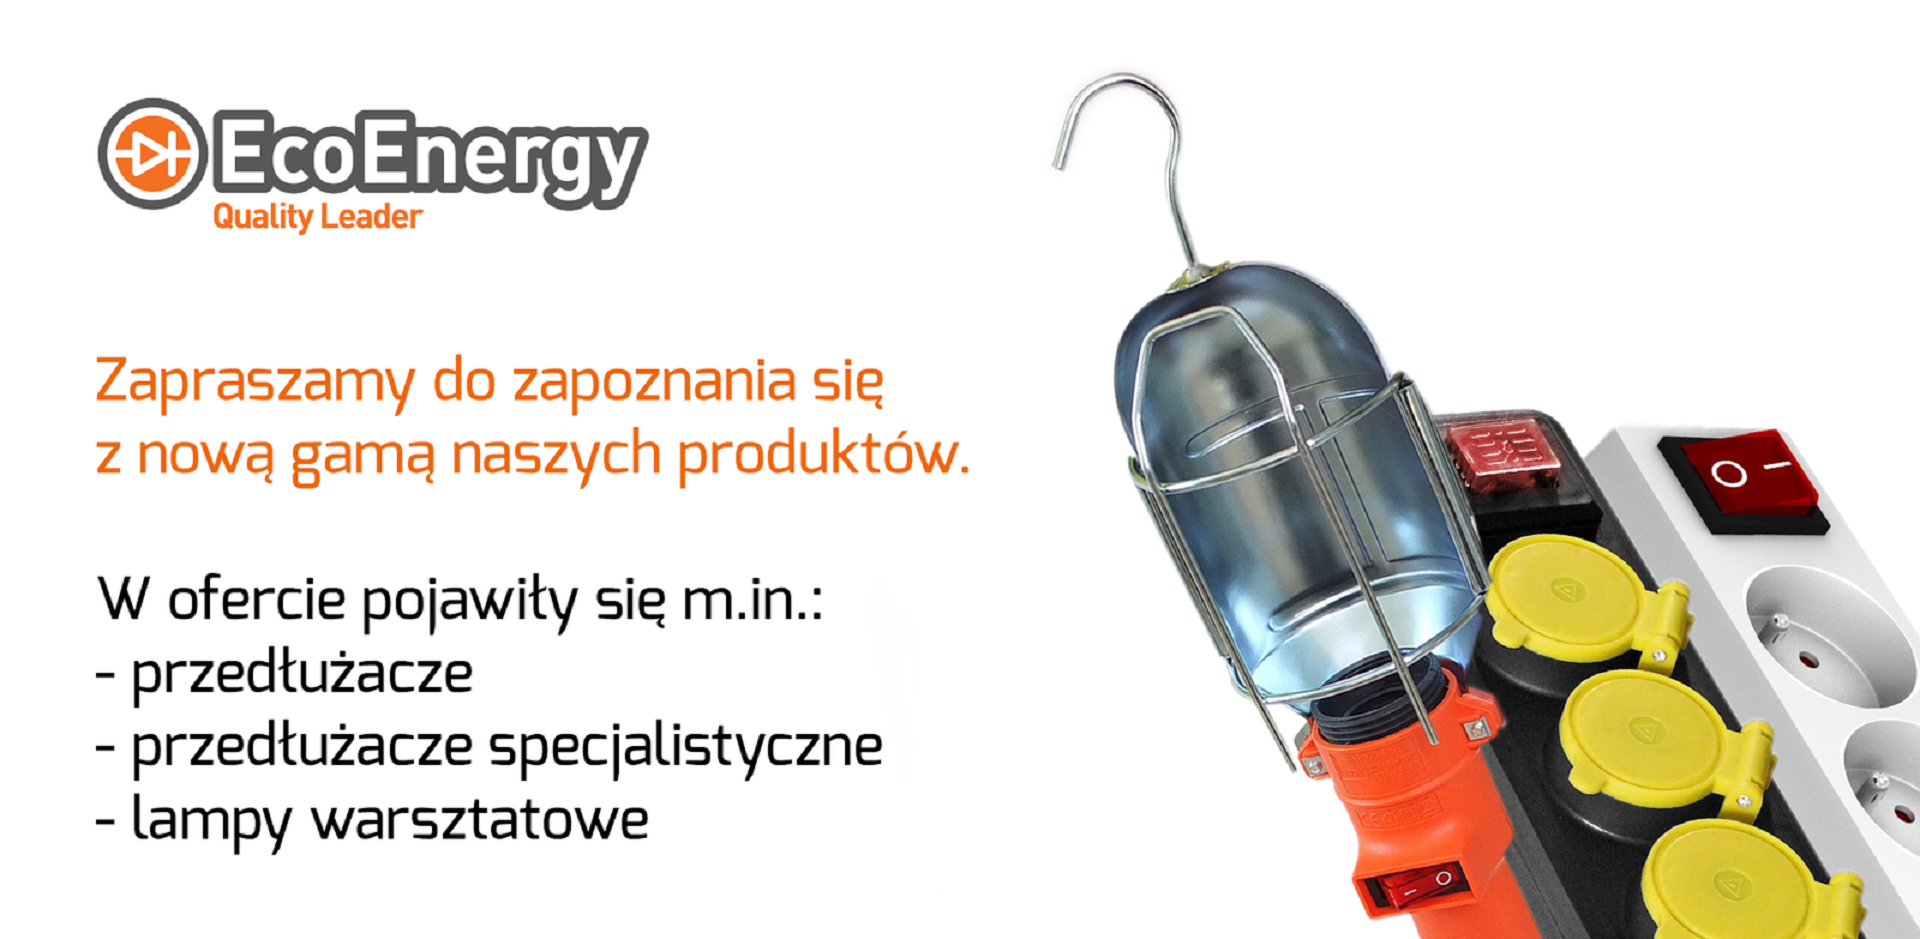 EcoEnergy 1 HD